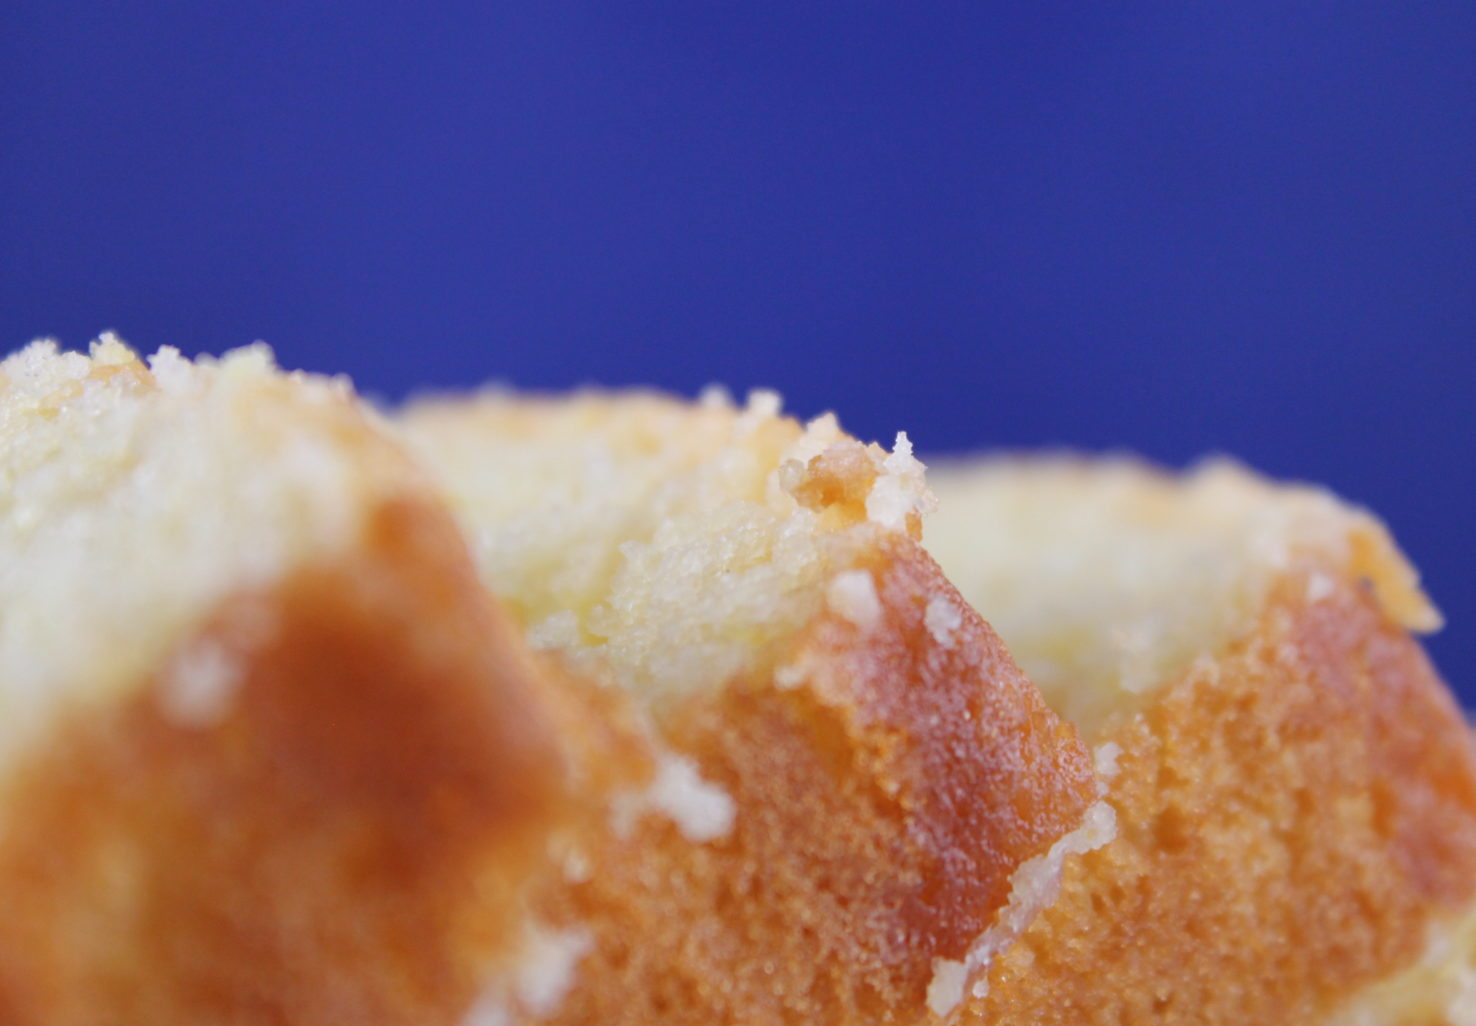 Detail shot of Lemon Loaf freshly baked for check in